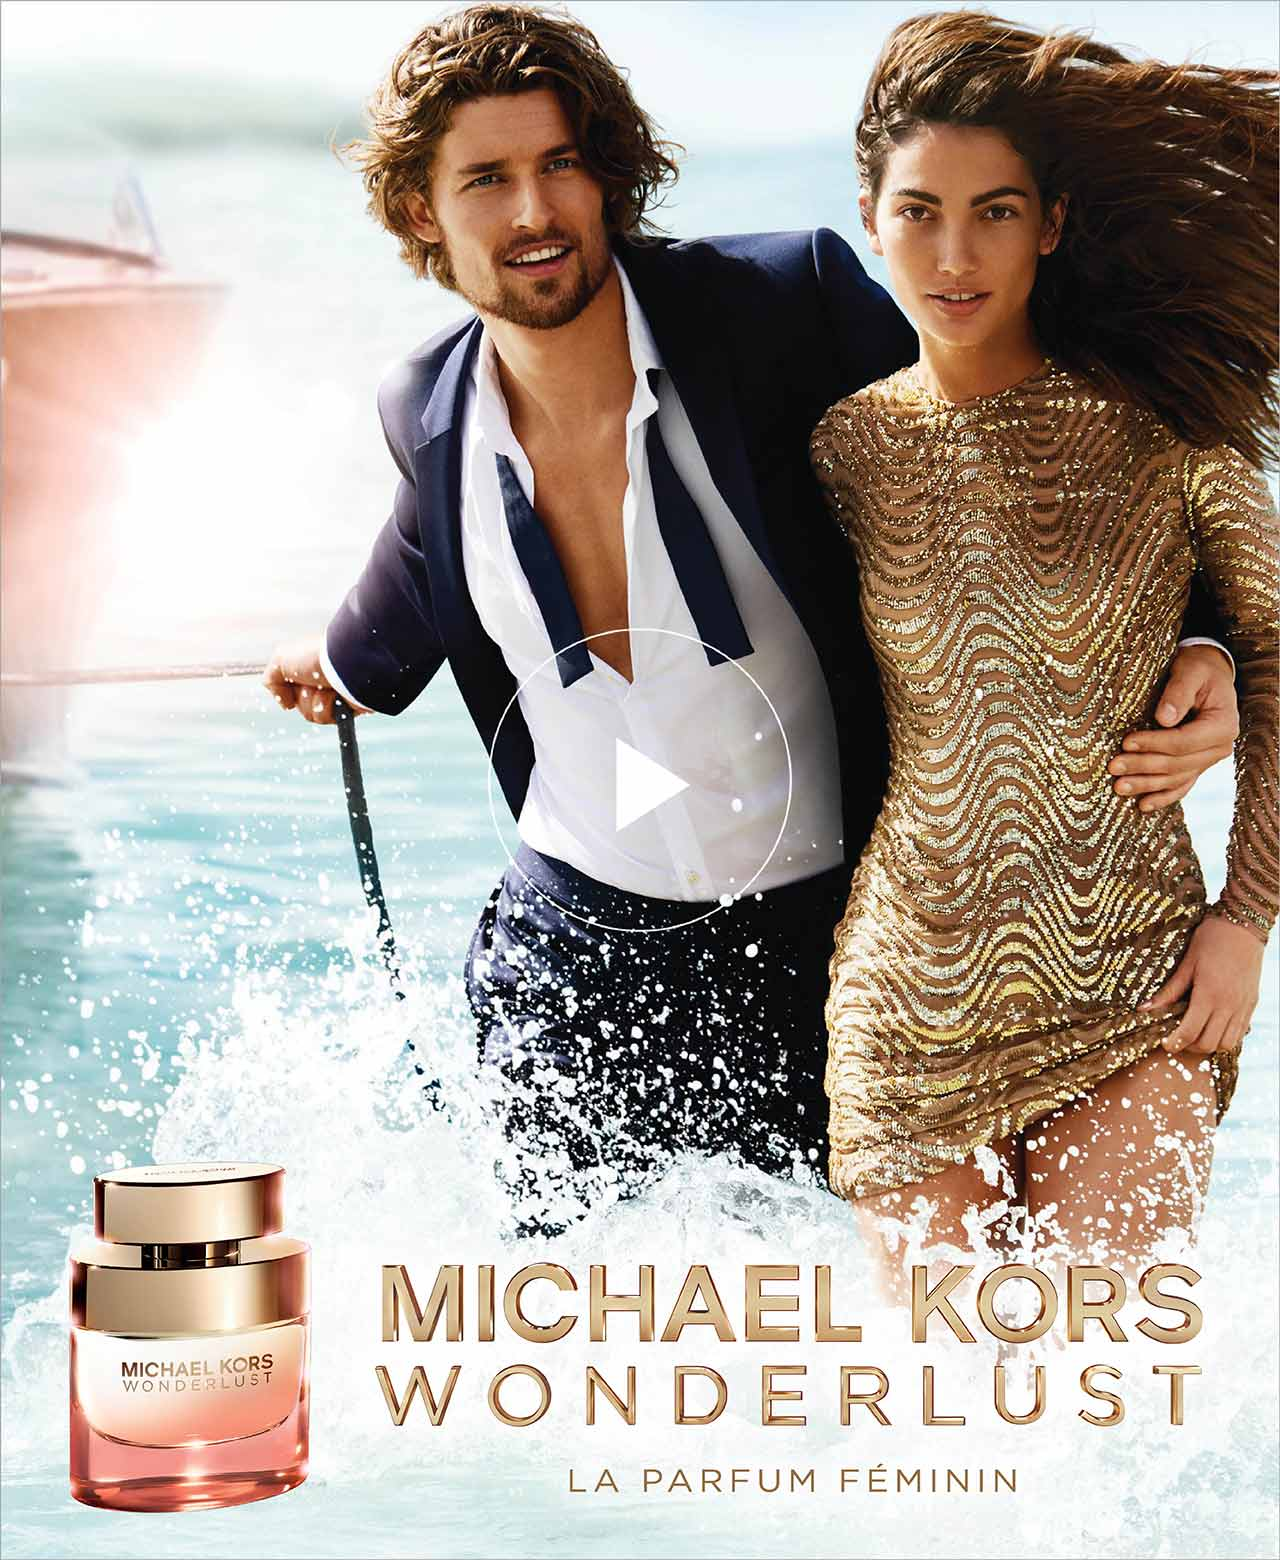 Michael Kors Wanderlust Video